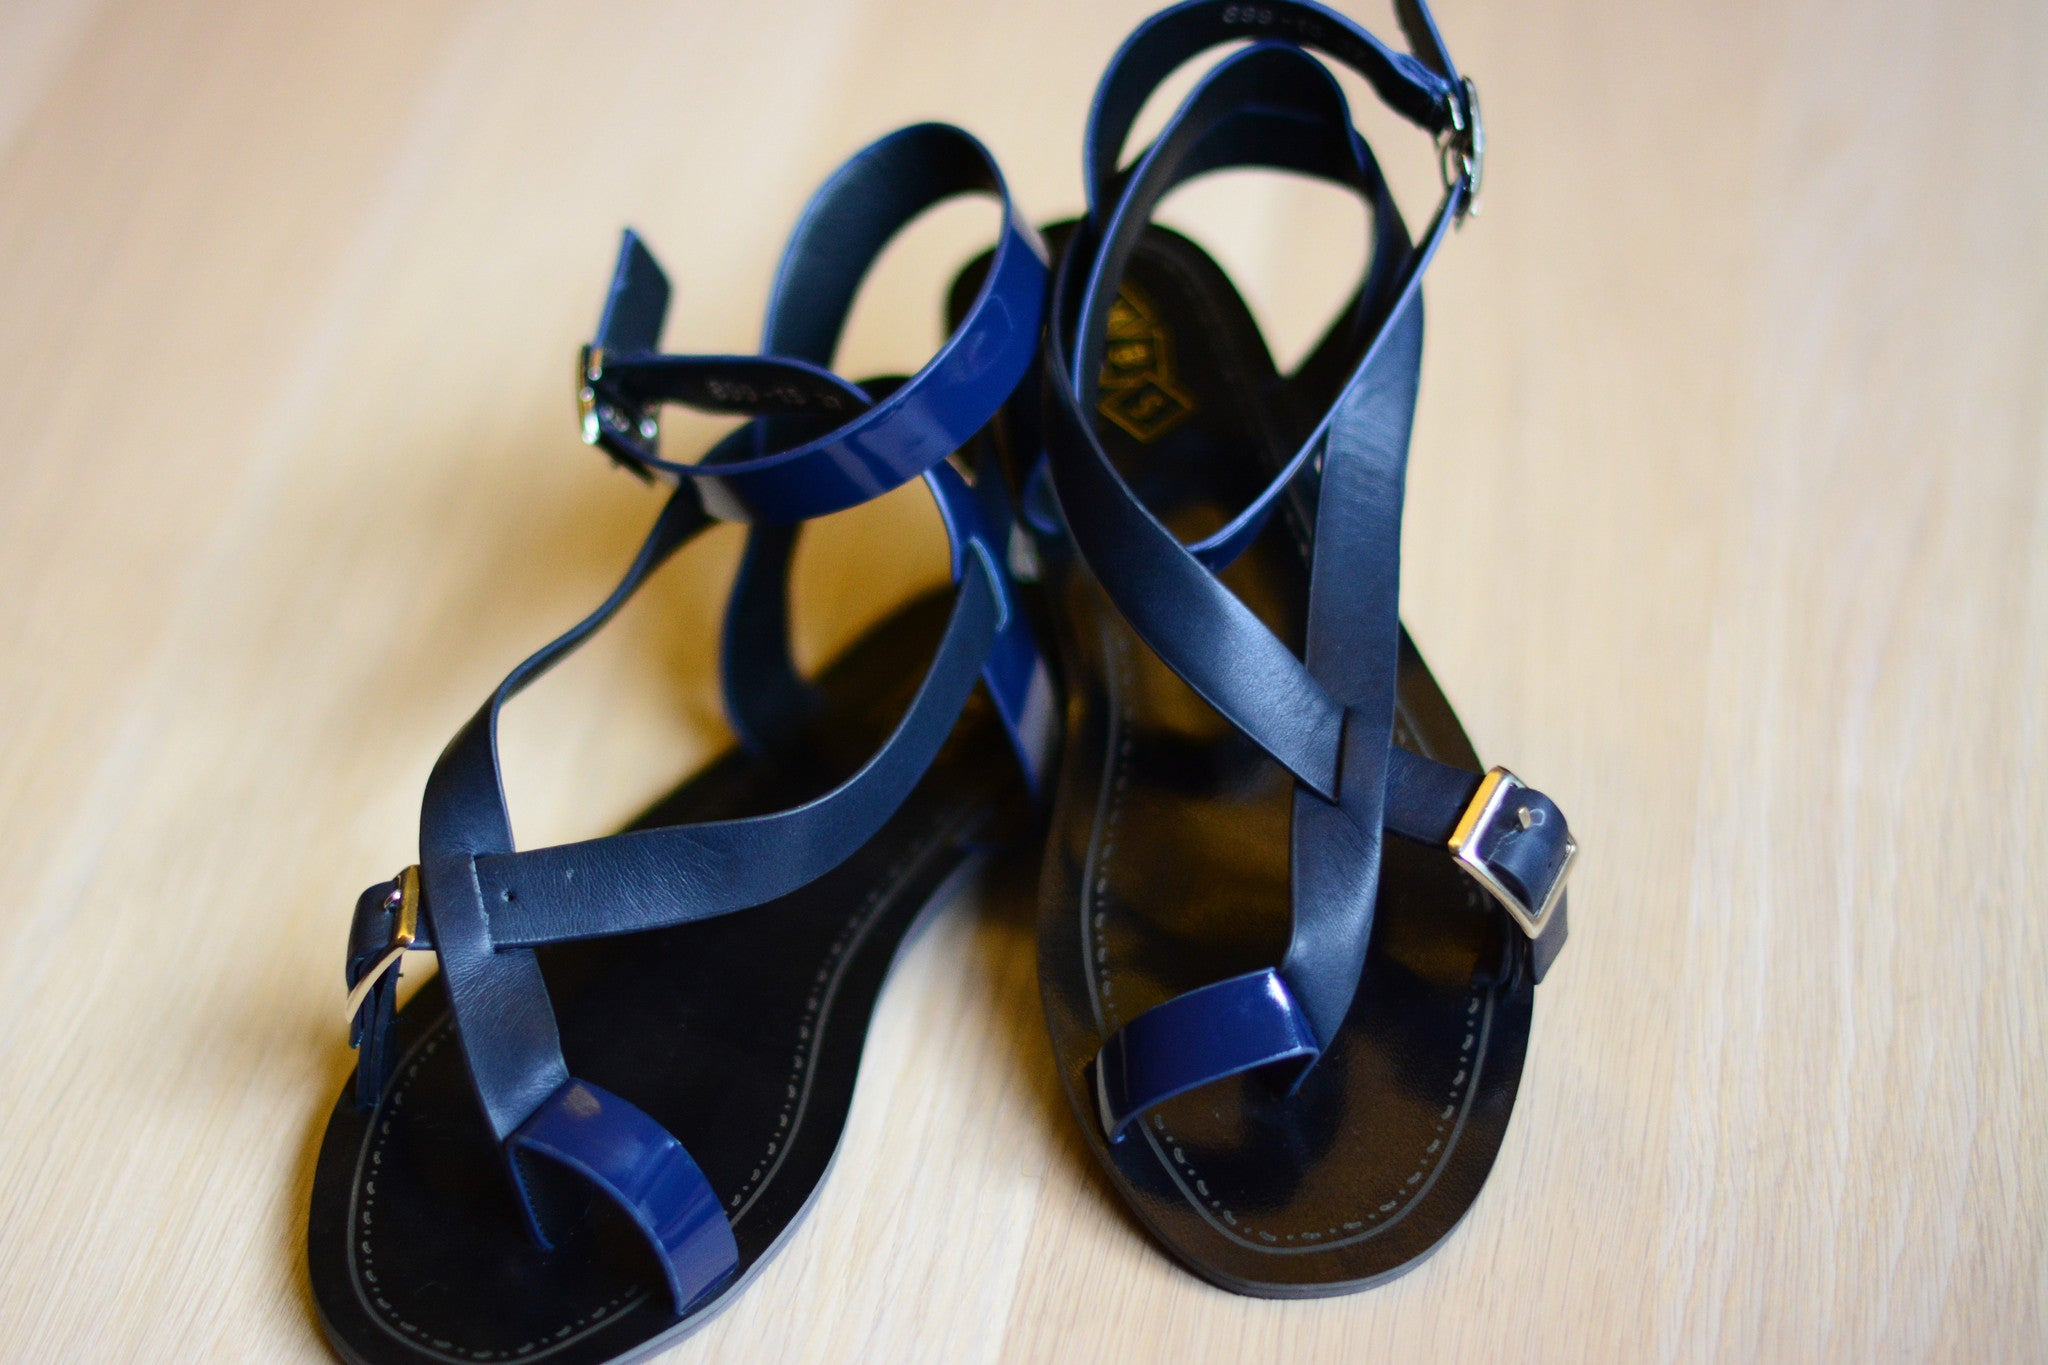 Louis Sandals in Navy Blue (Last pair)